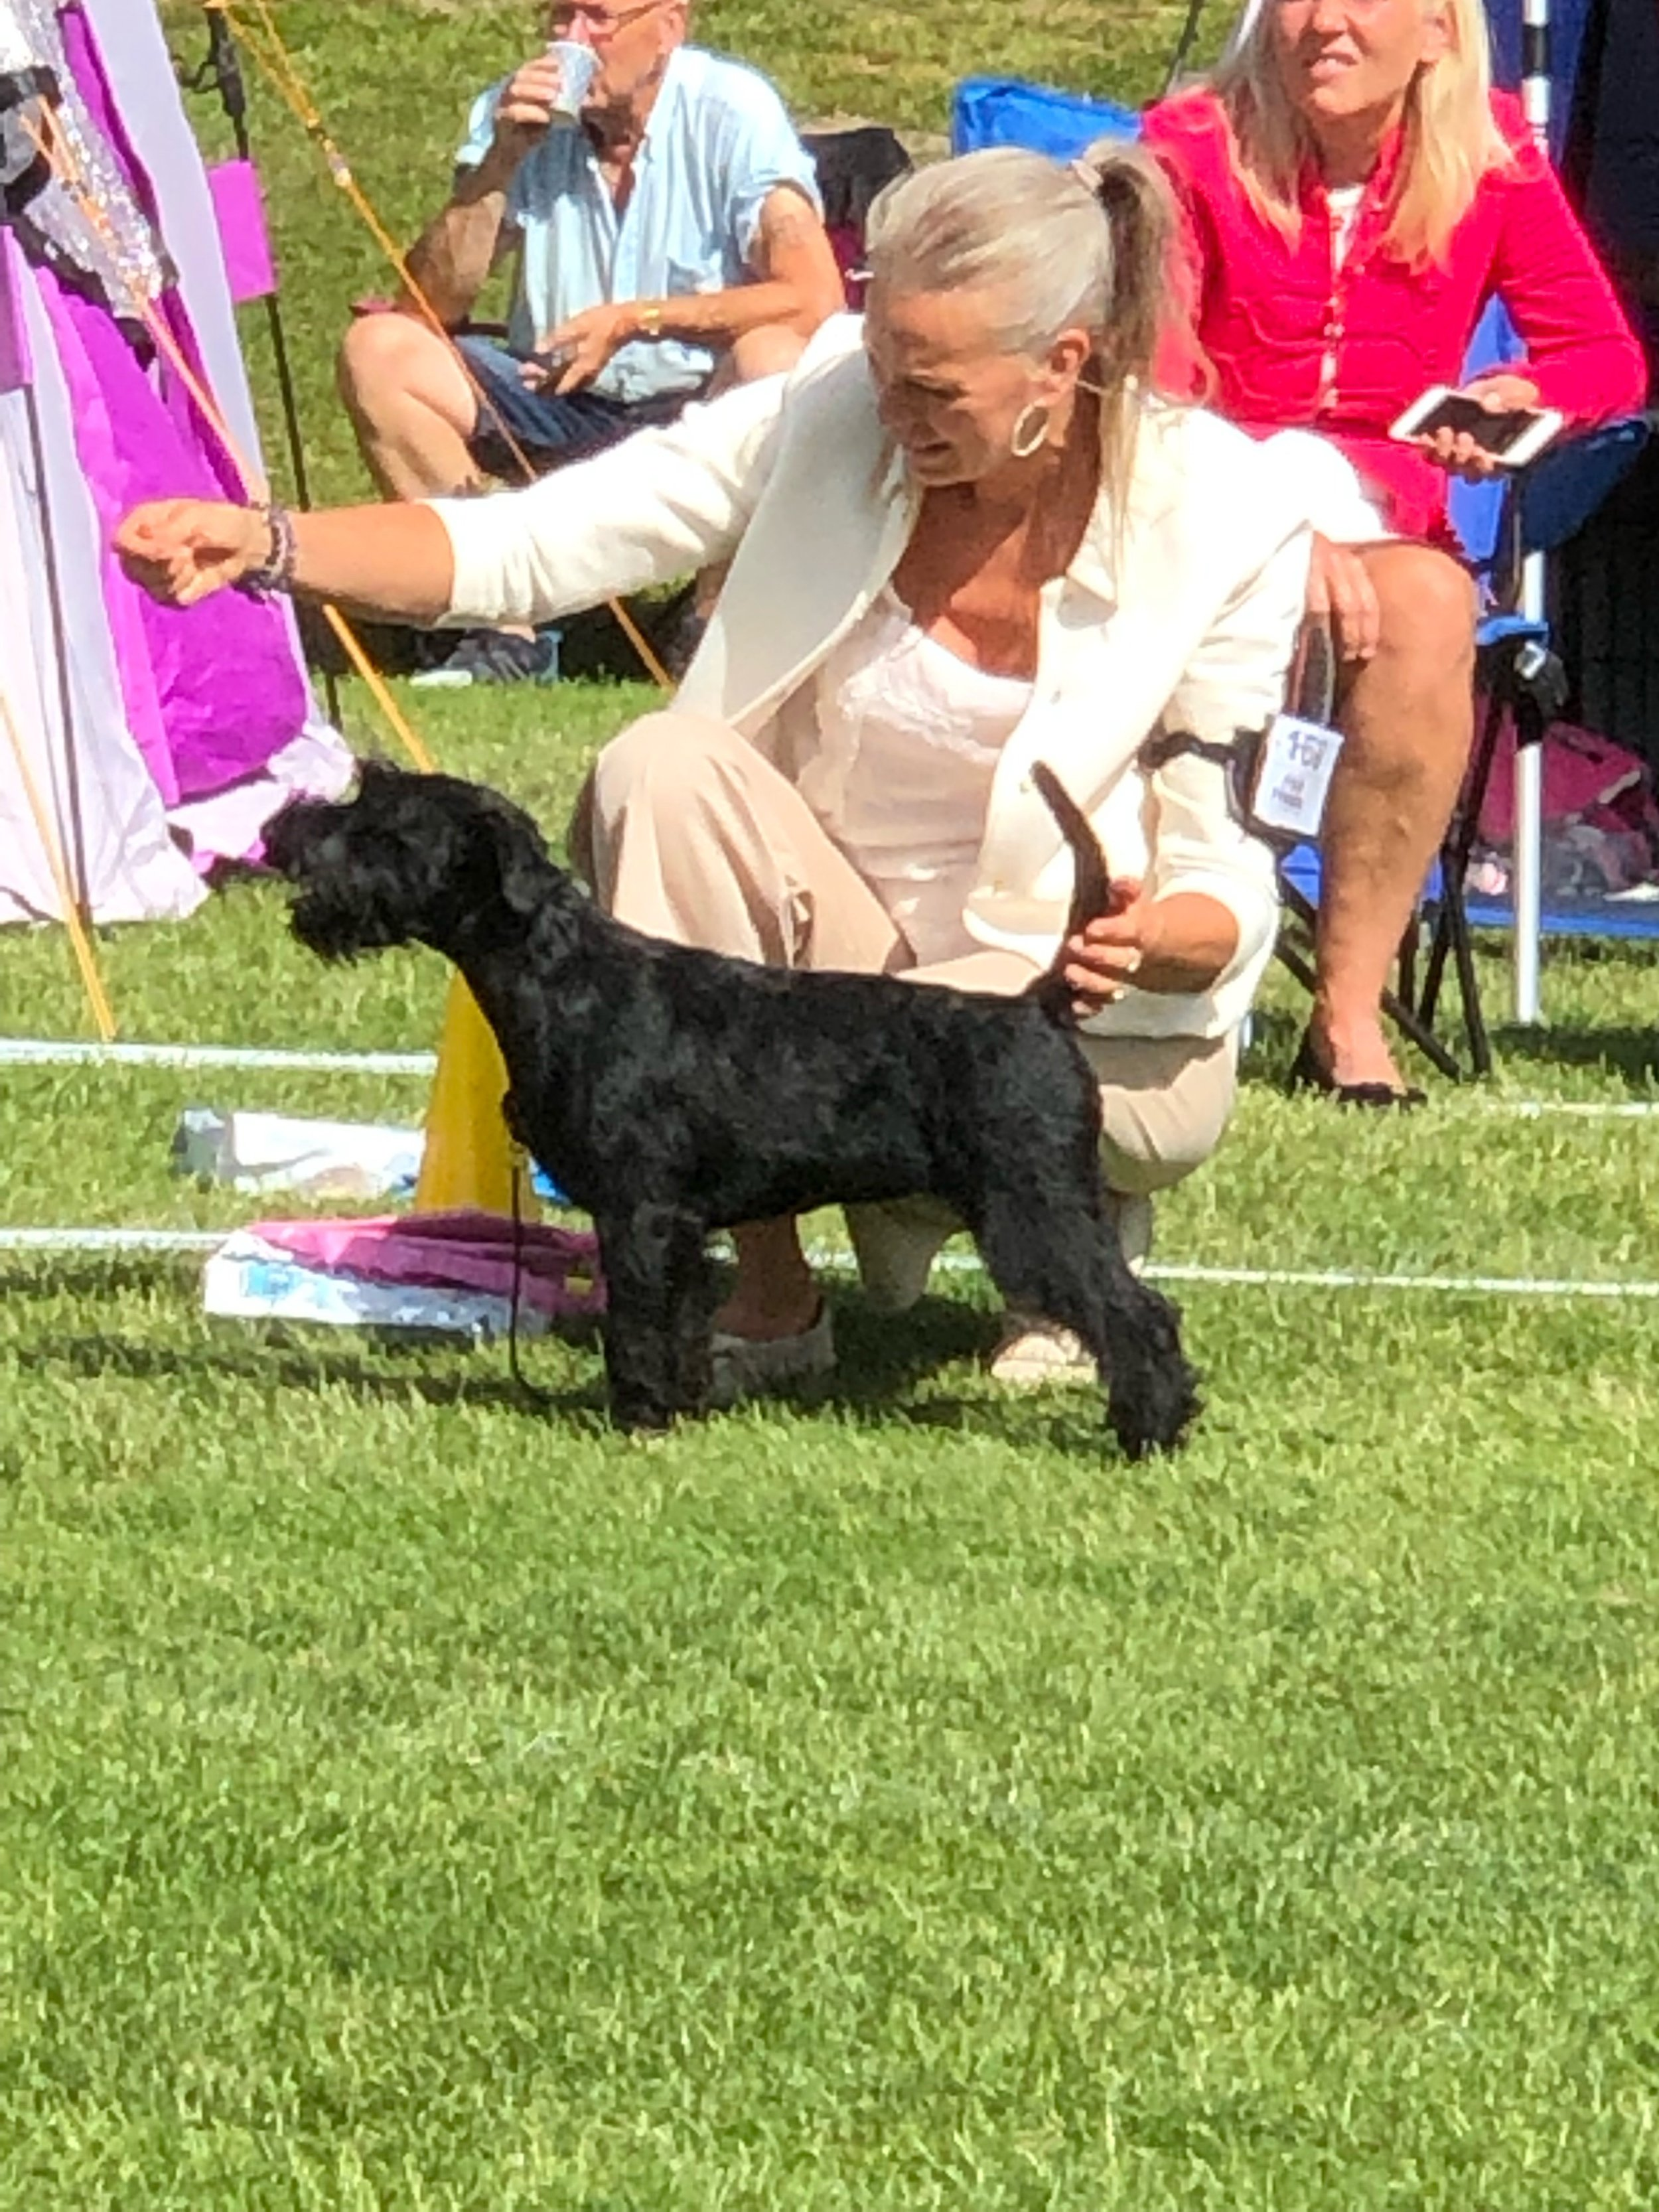 BEST IN SHOW puppy 4-6 m at her very first steps in the showring ever Velvet Dandy´s Ludmila